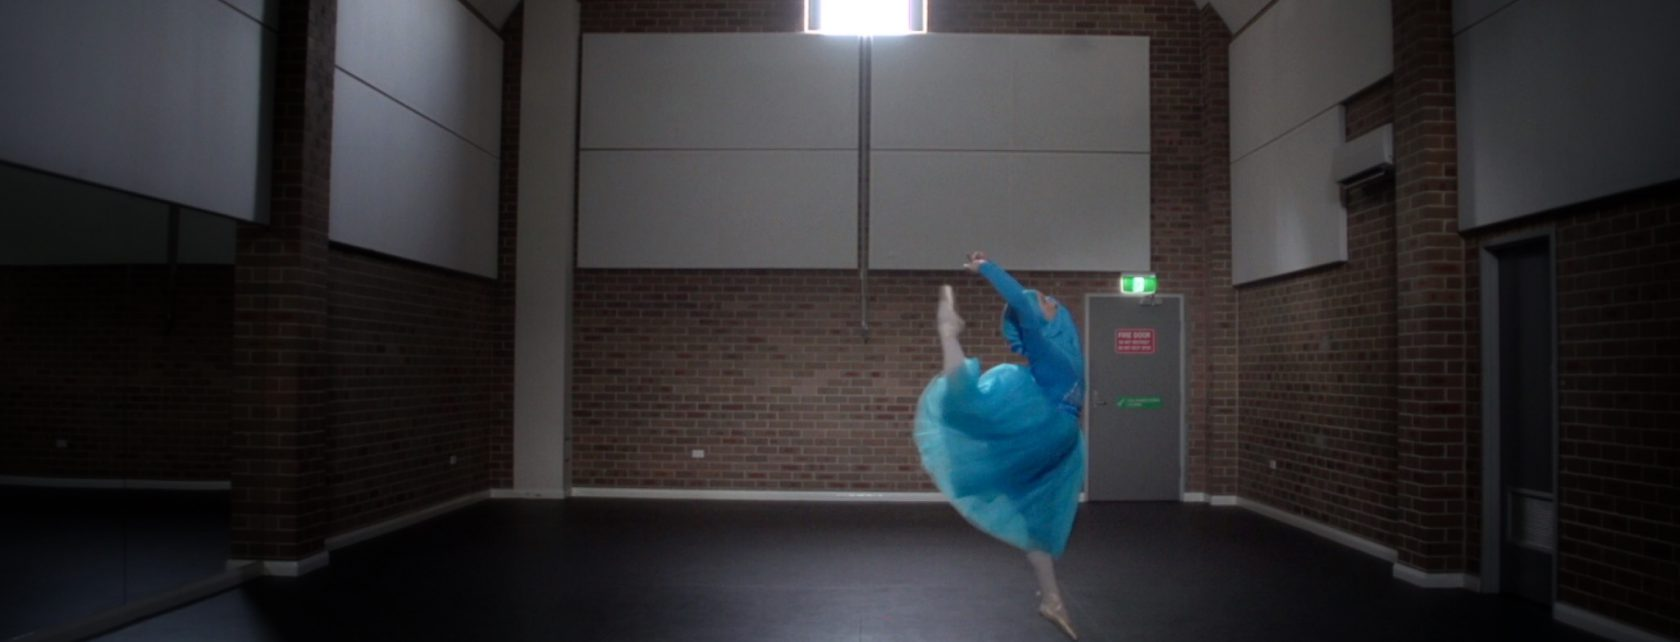 SPORT FASHION BRAND BJÖRN BORG AWARDS BALLET DANCER TO BECOME 1ST MUSLIM HIJABI BALLERINA.